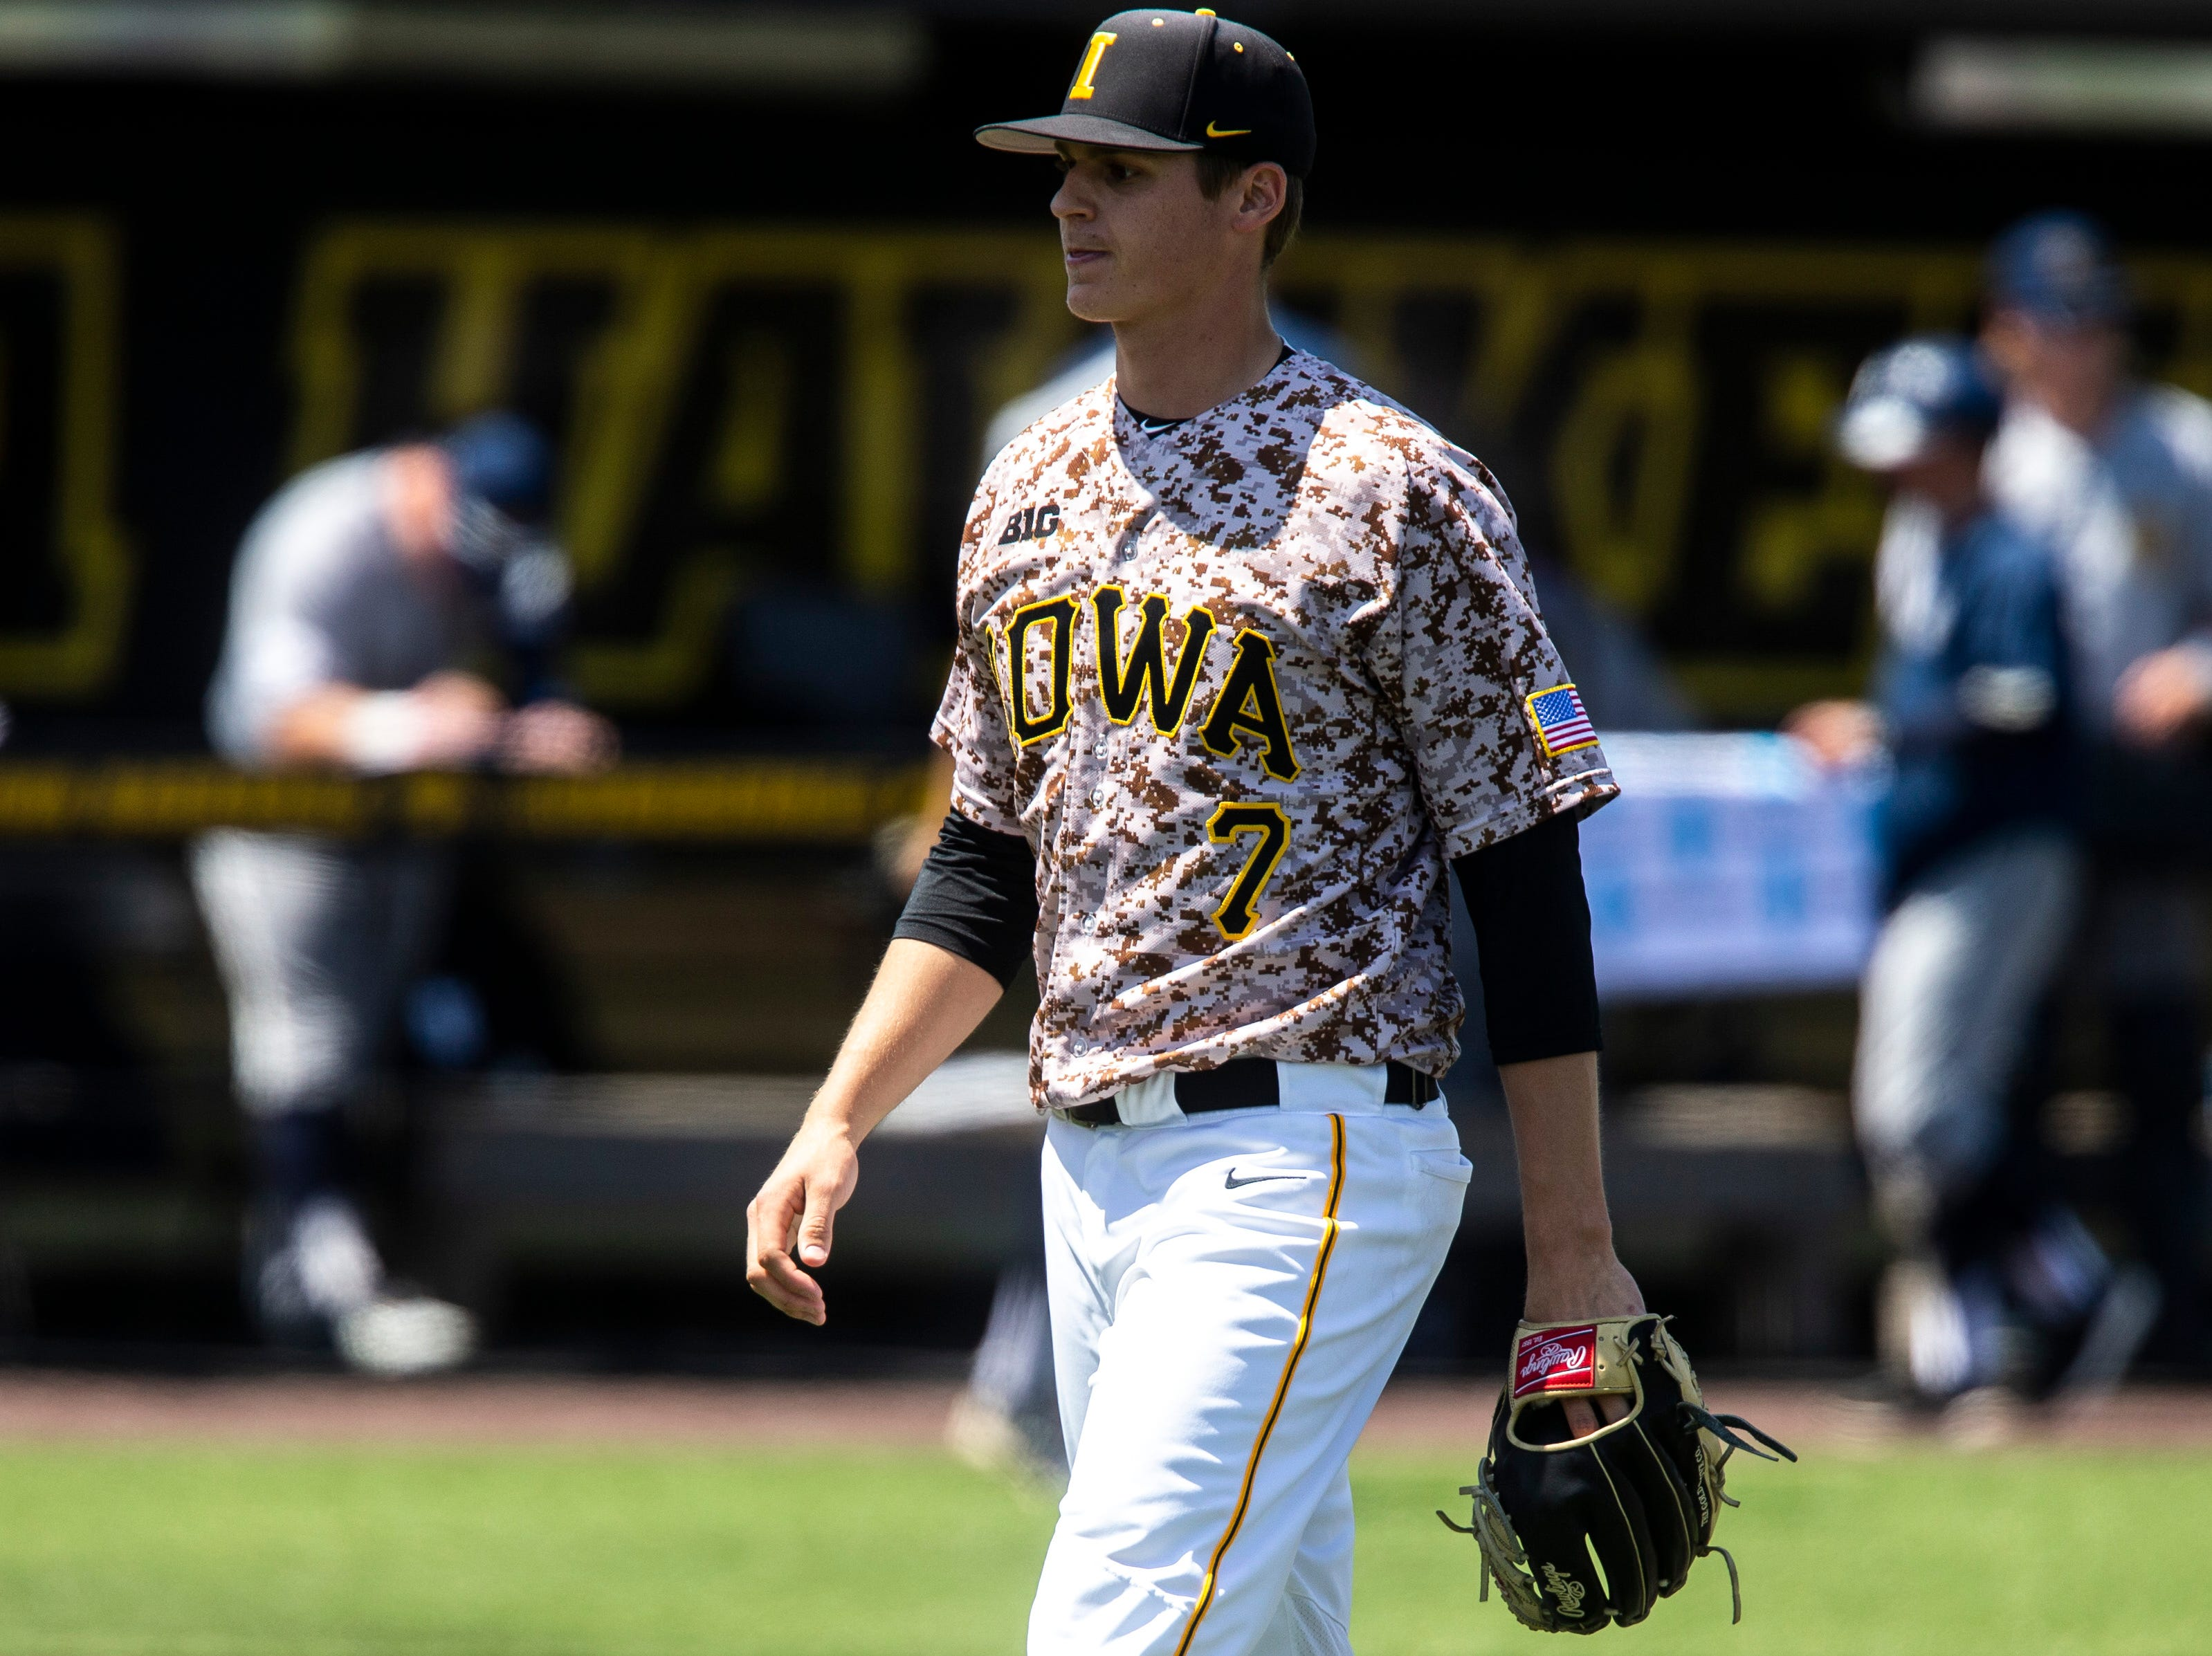 Iowa pitcher Grant Judkins (7) walks back to the dugout during a NCAA non conference baseball game, Sunday, May 5, 2019, at Duane Banks Field in Iowa City, Iowa.